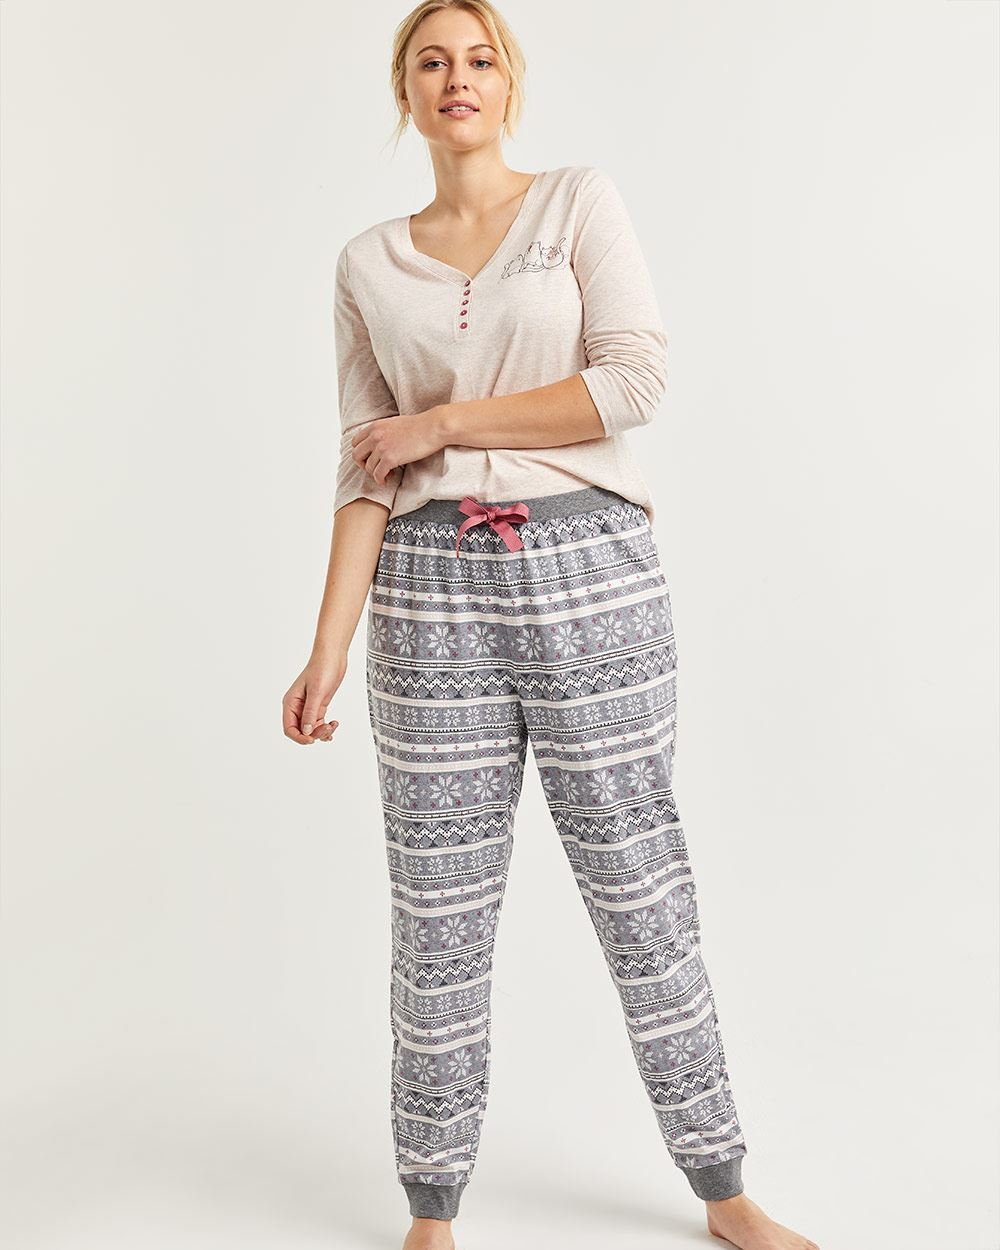 Cotton-Blend Pyjama Set with Joggers Pants